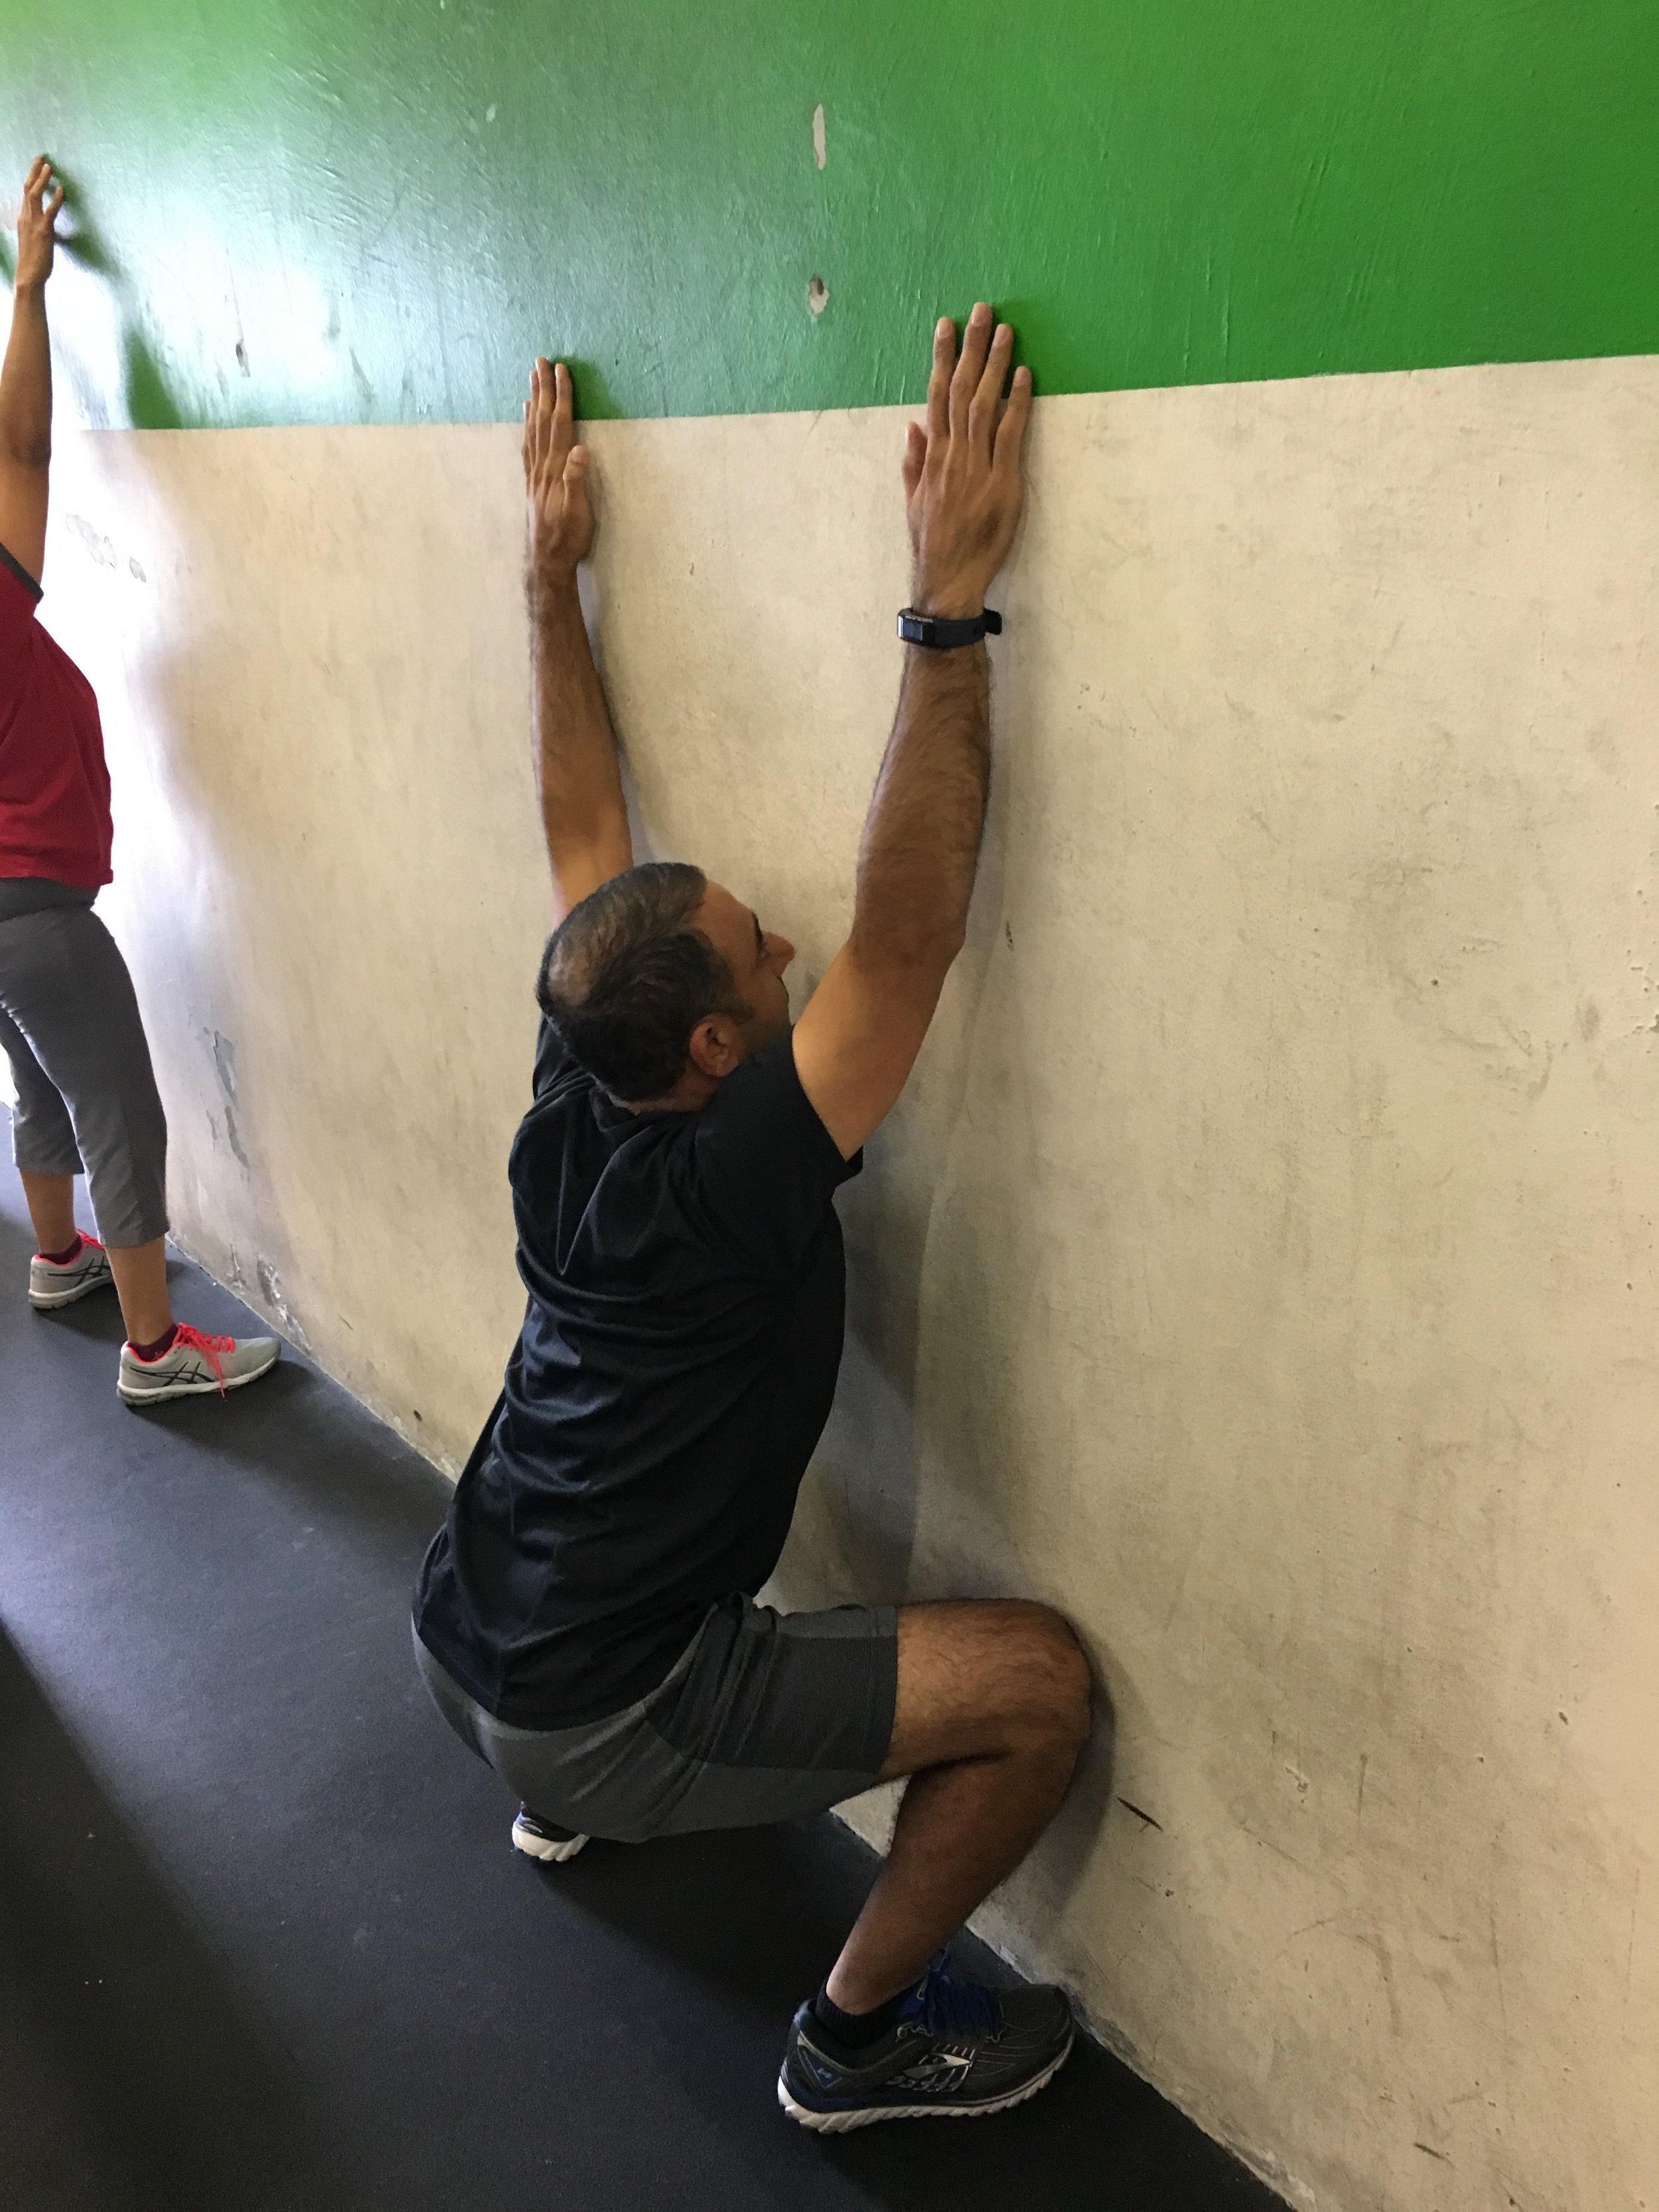 Ashish showing great range of motion and control with wall squats